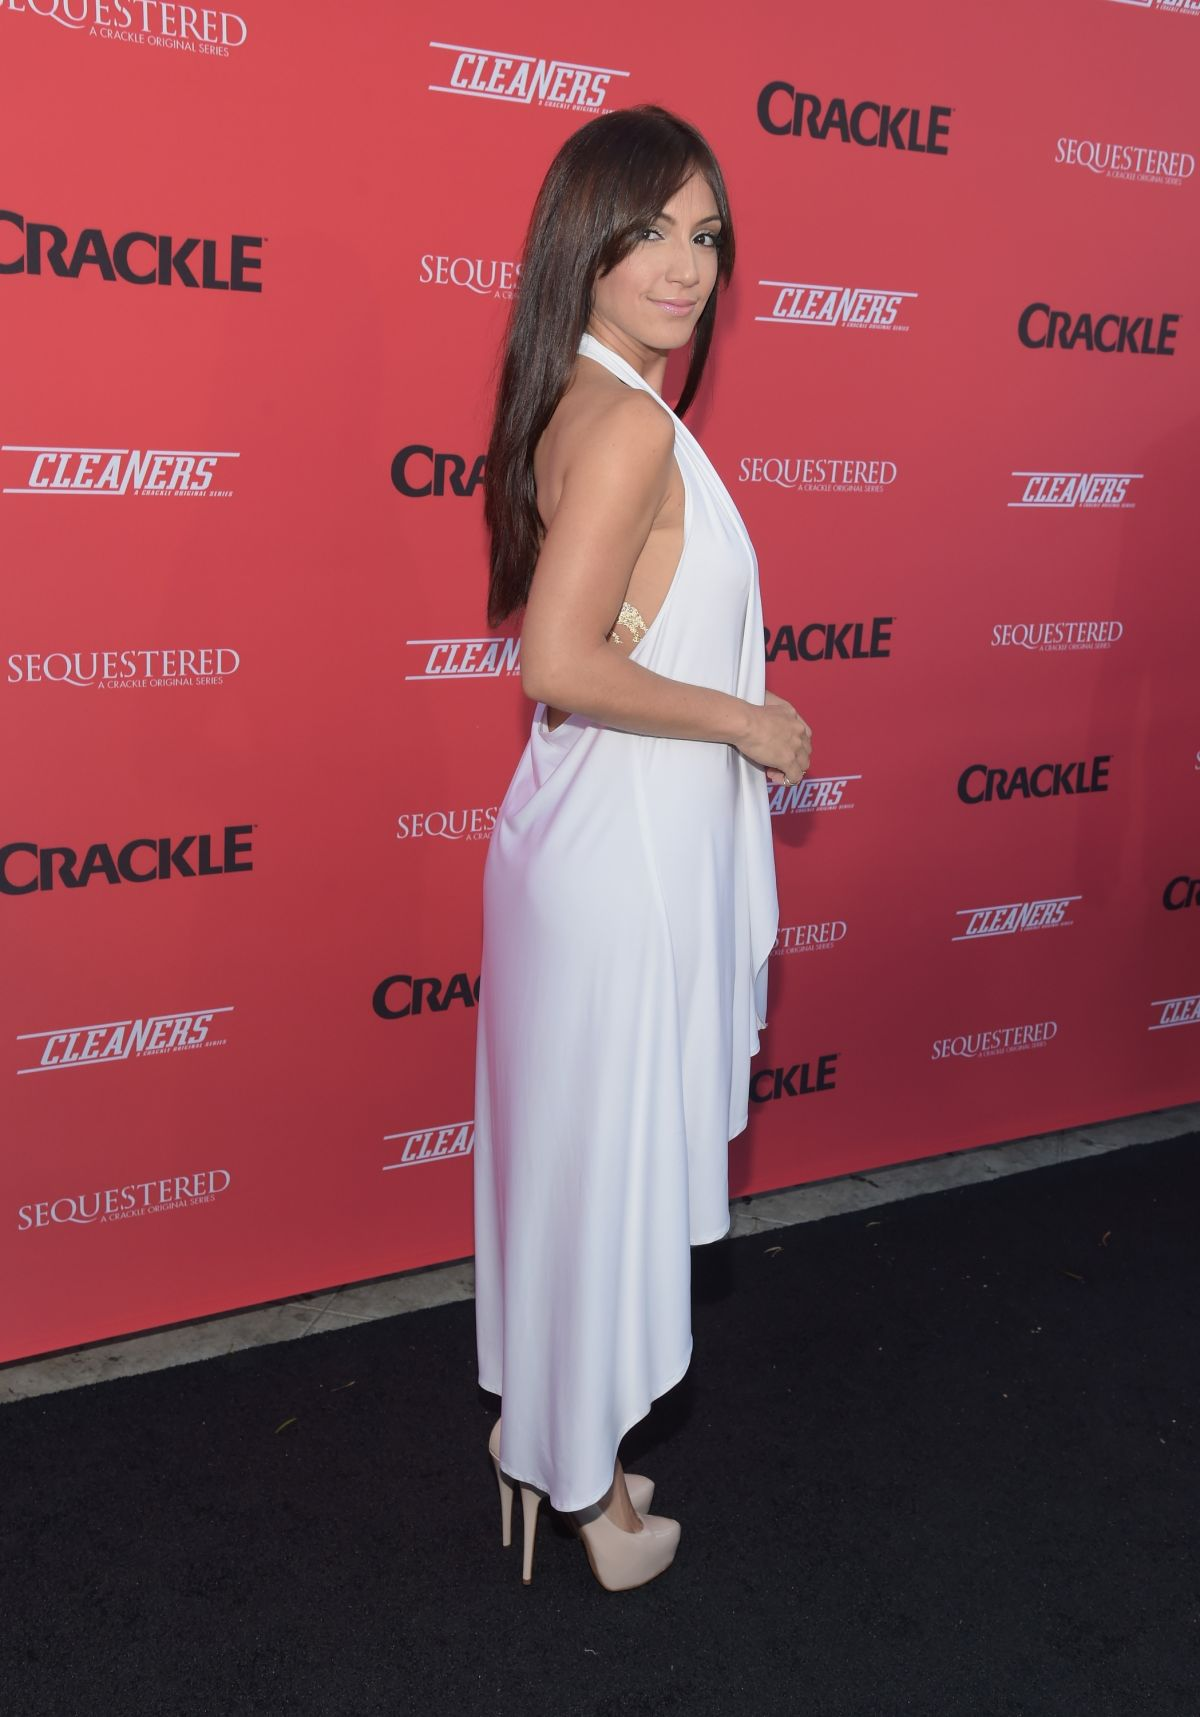 LAURA ALEMAN at Sequestered and Cleaners Premieres in West Hollywood